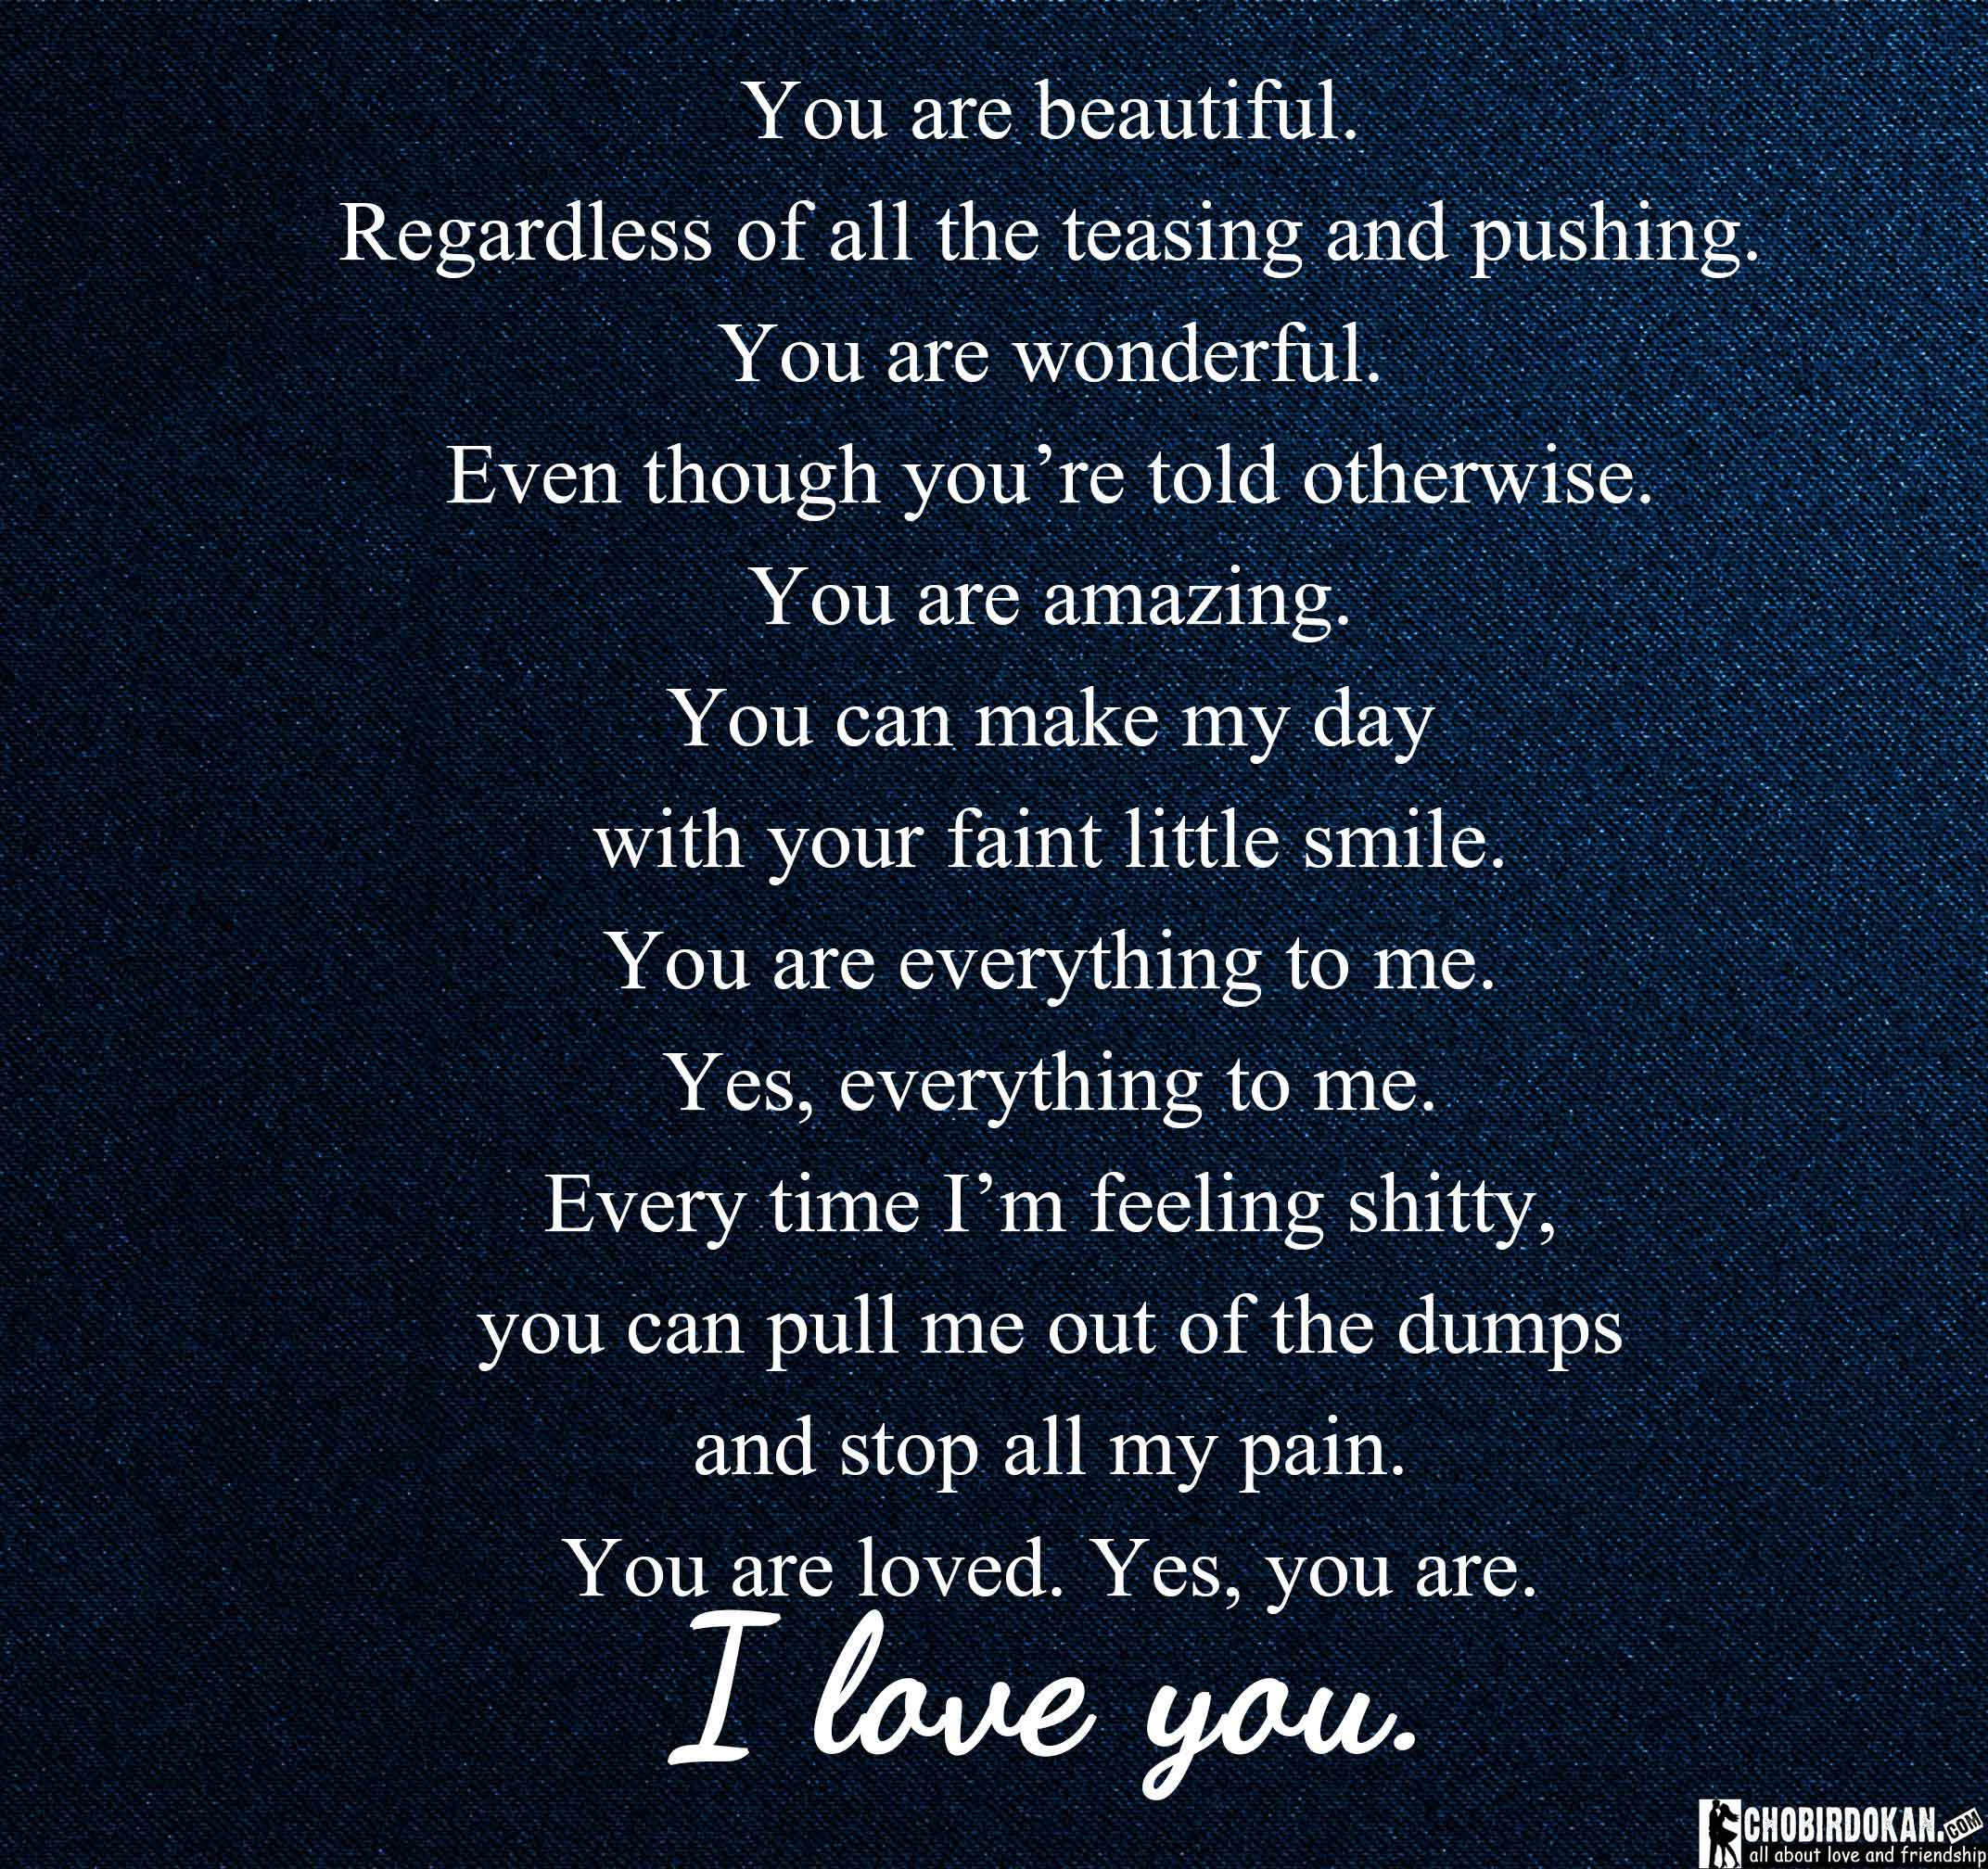 You are amazing quotes for him